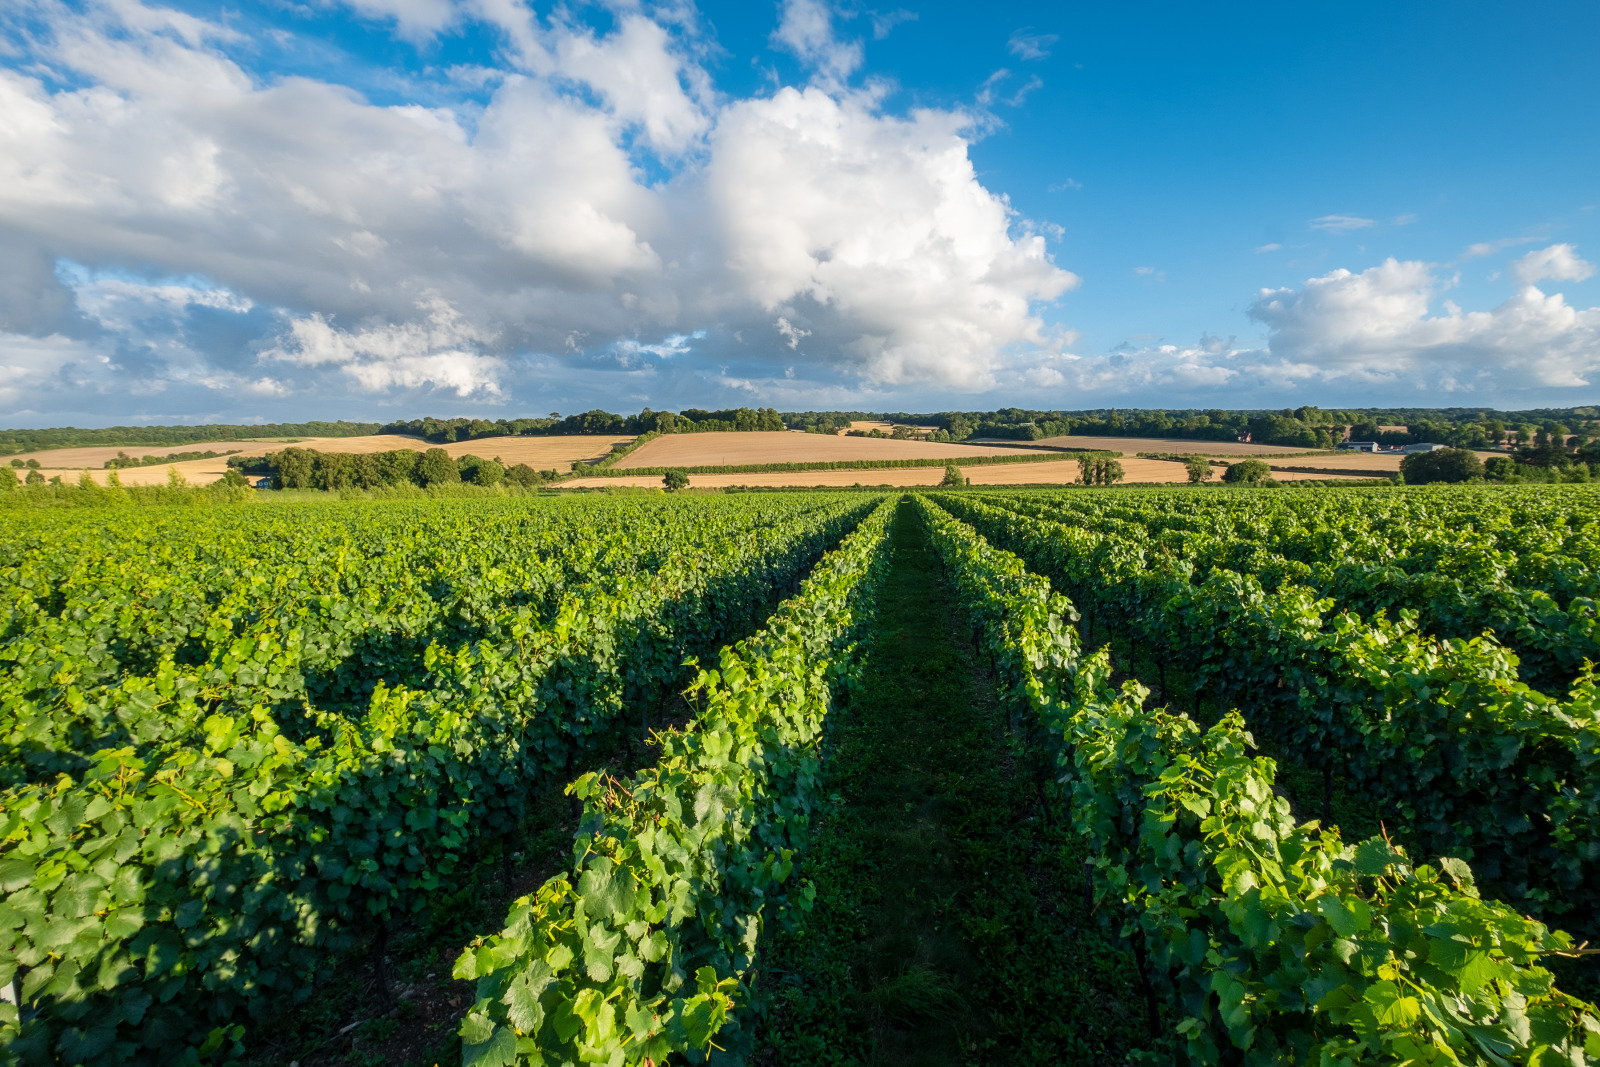 Bubbling over: Meet the English sparkling wine makers beating the French at their own game